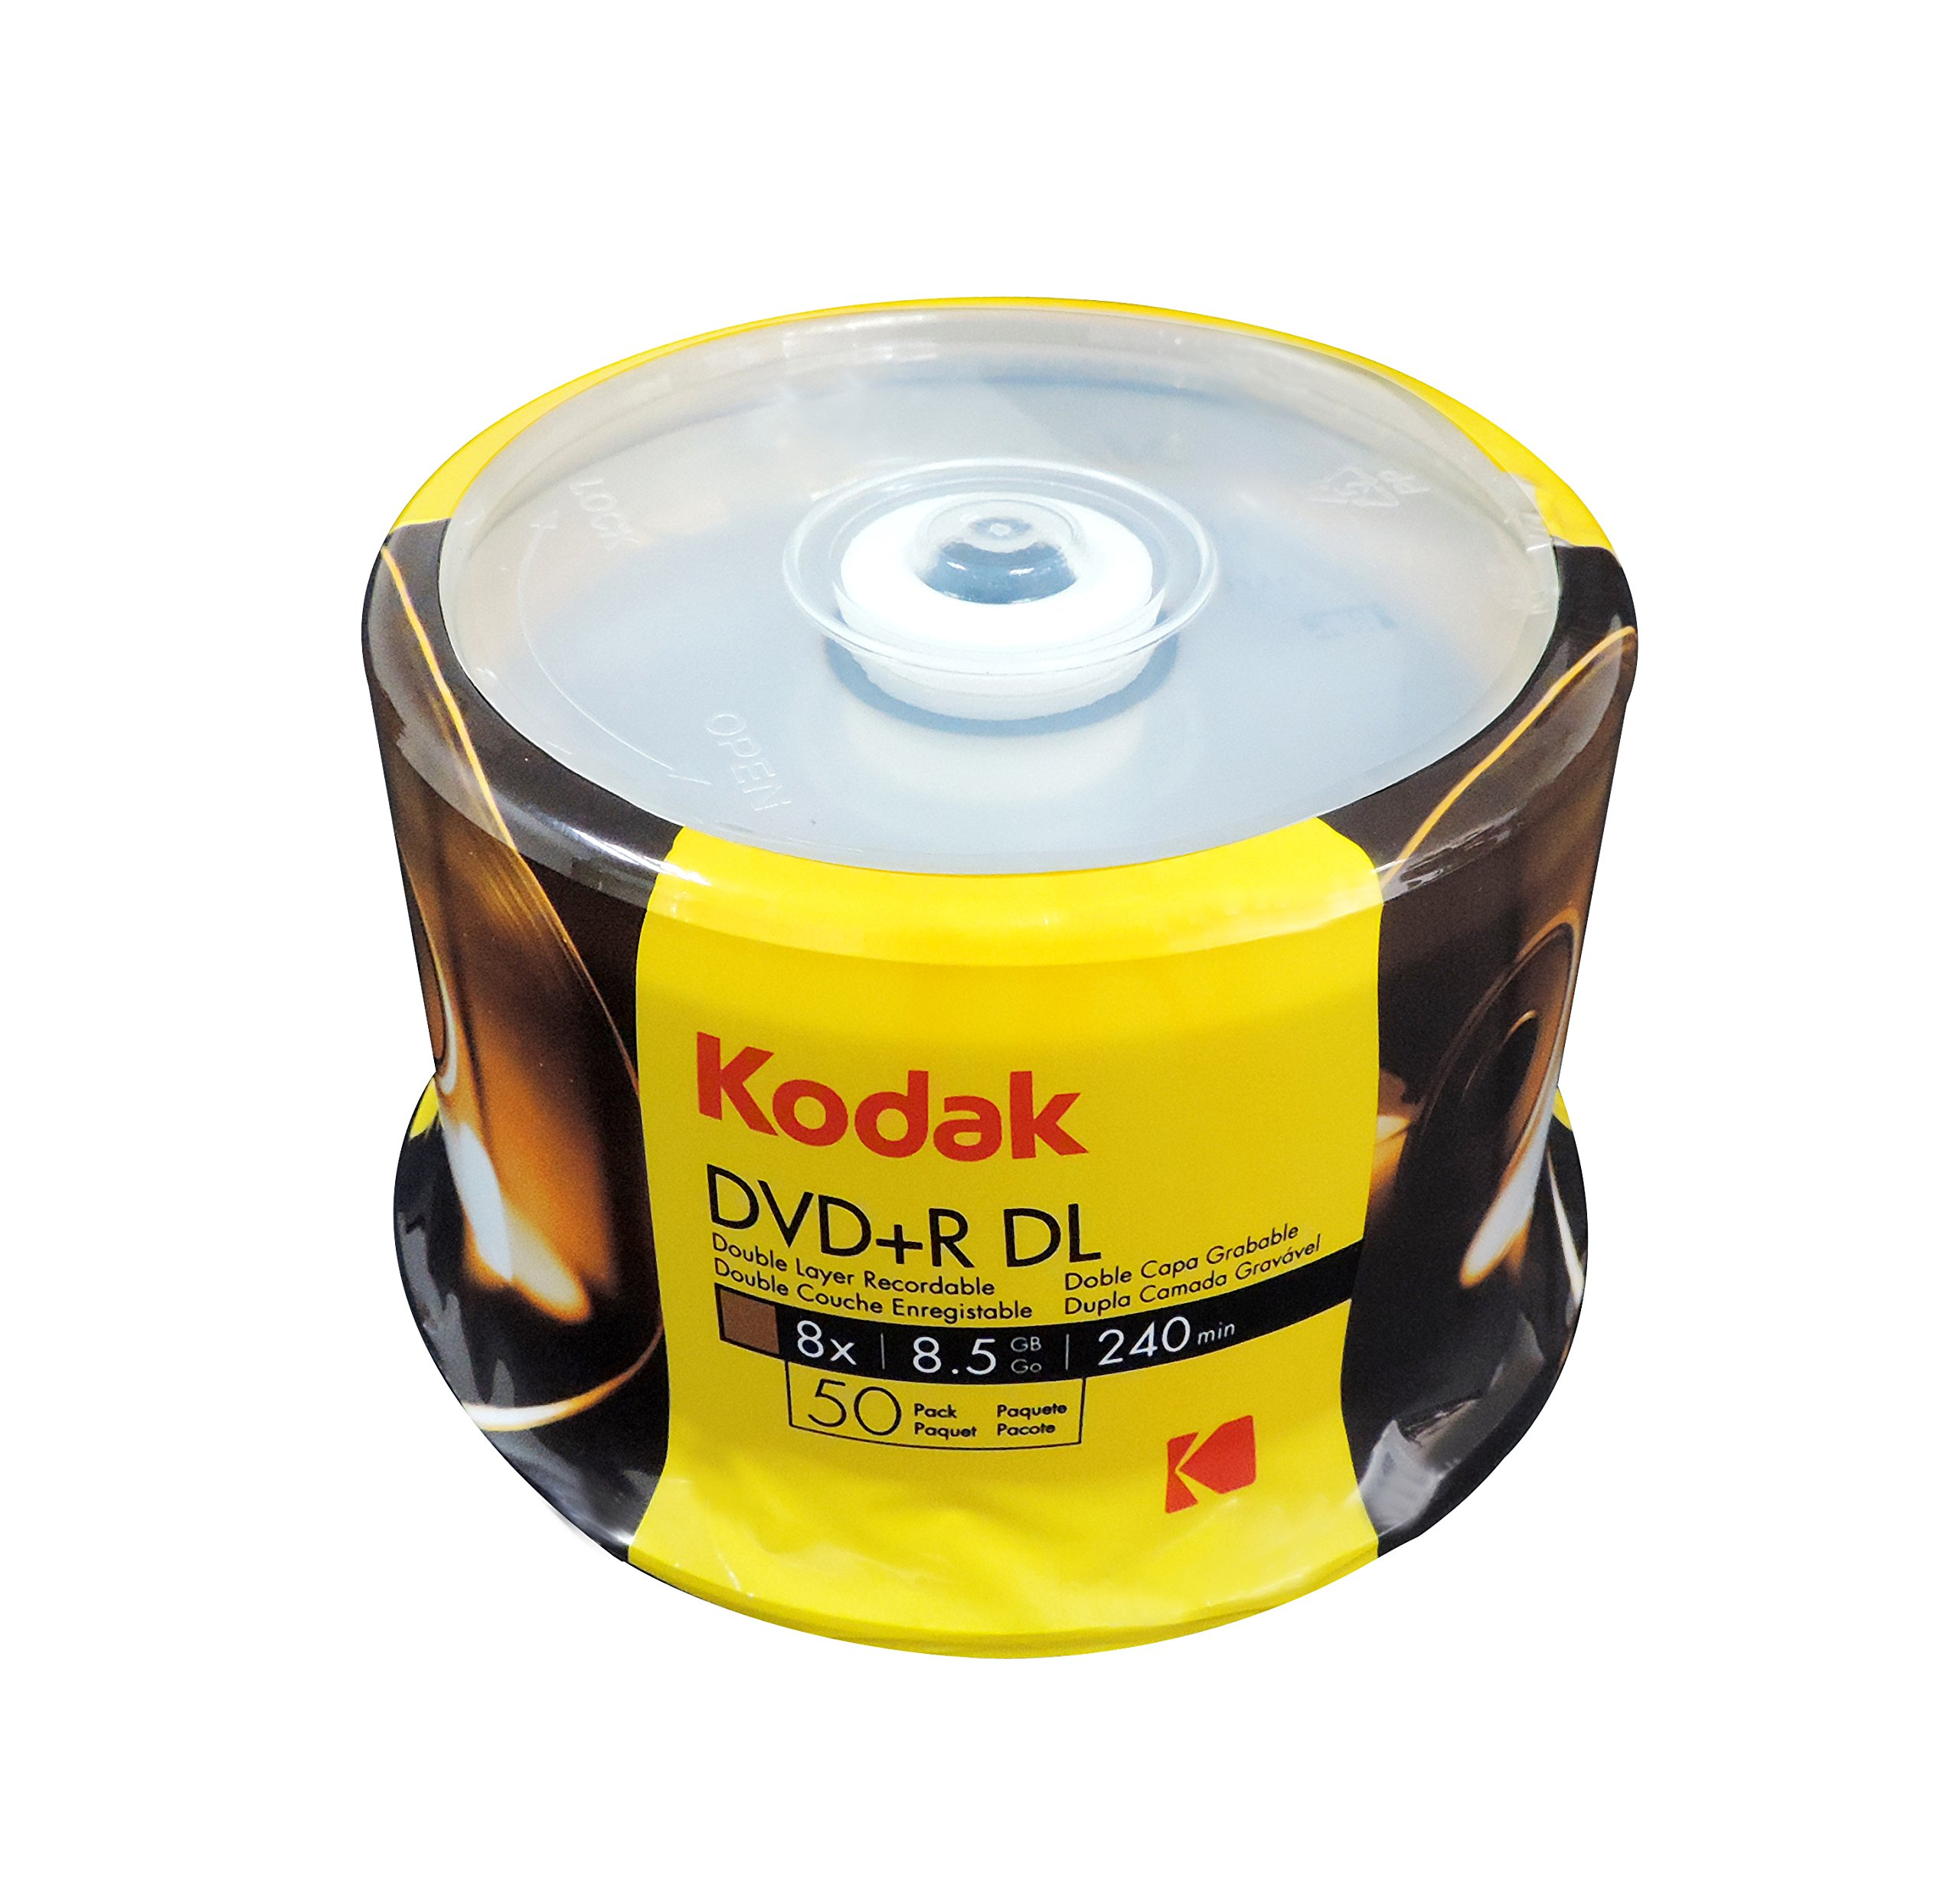 KODAK DVD DL 8.5GB 50PK by Kodak